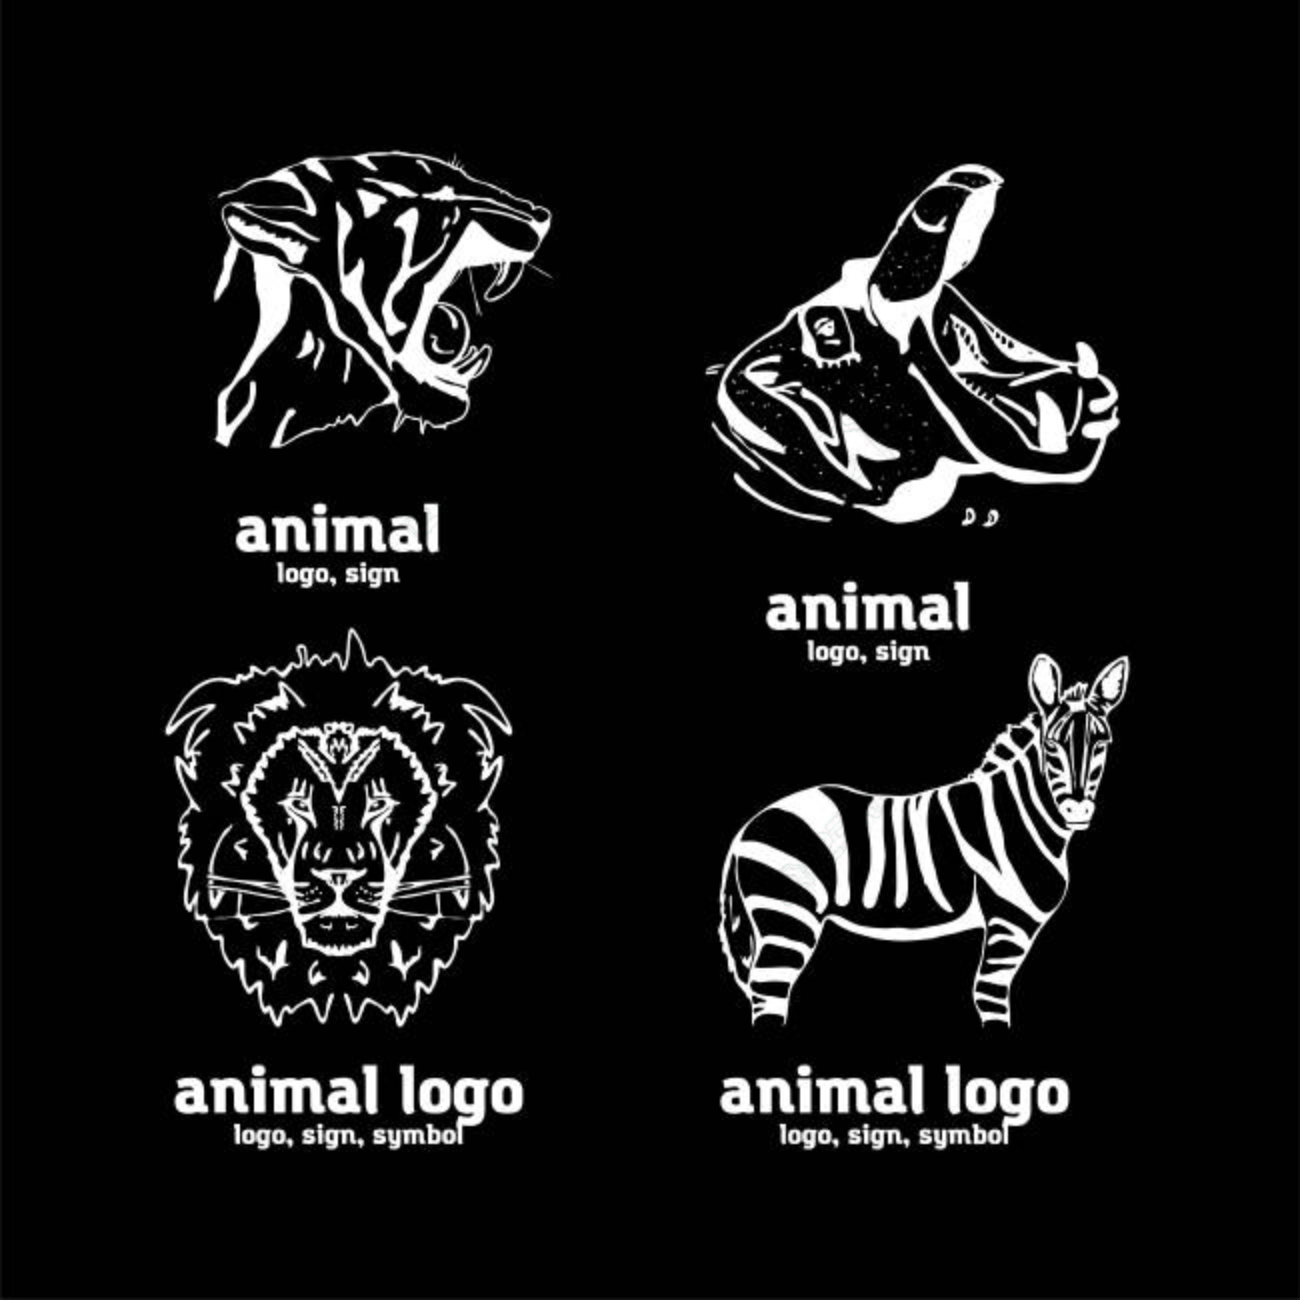 Hand drawn pencil graphics african animals sign symbol banque dimages